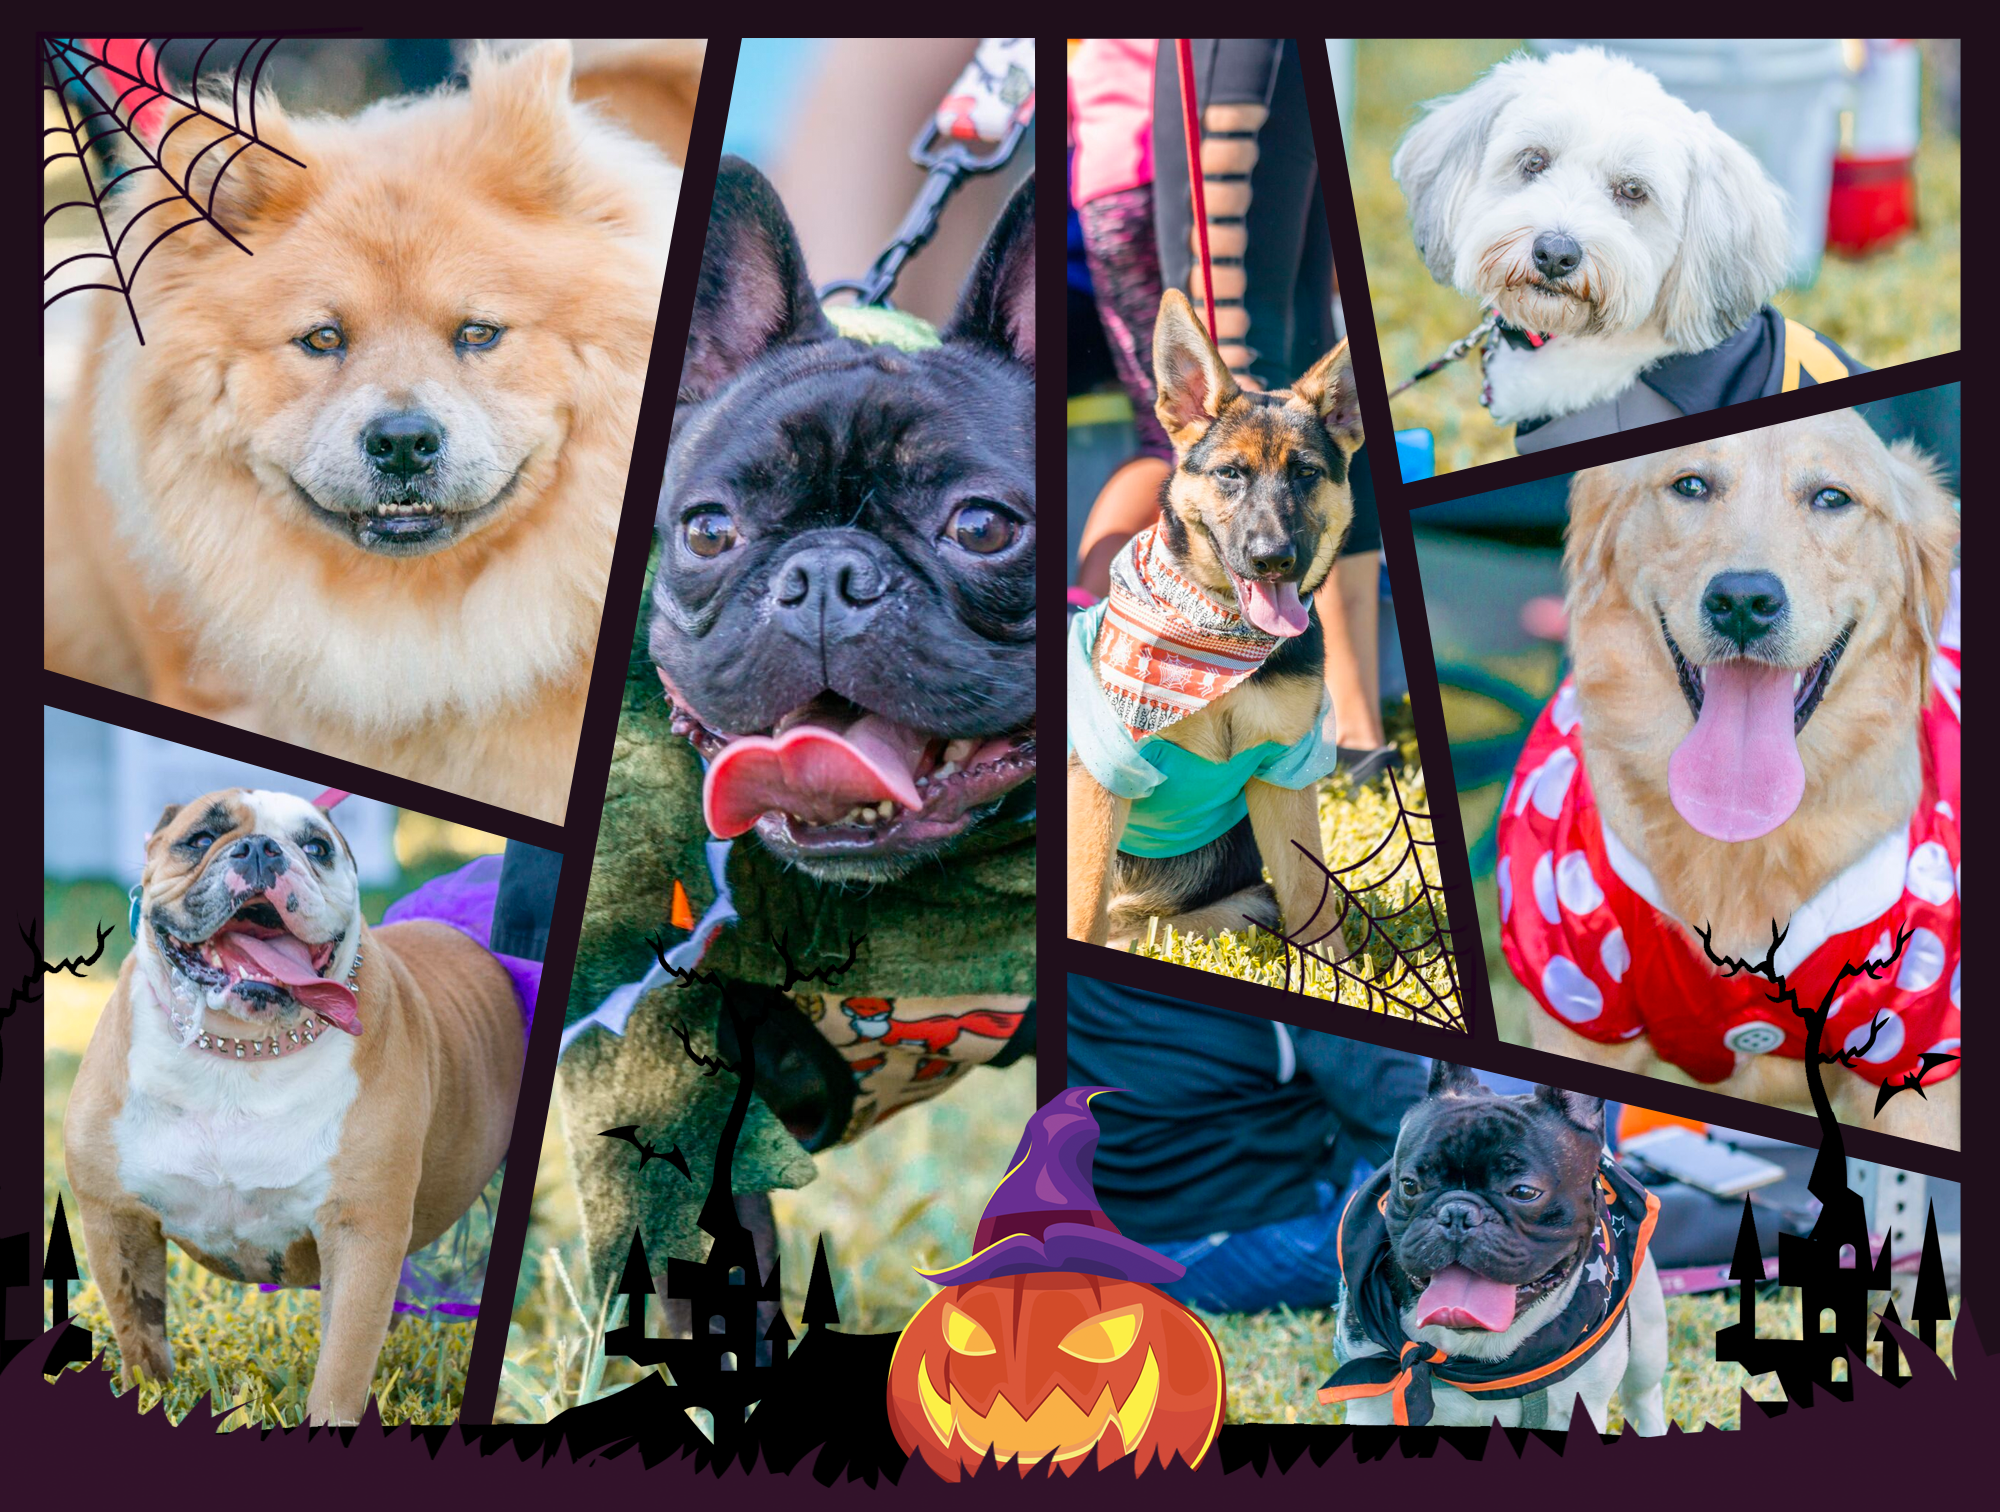 The 6th Annual Bow Wow Ween Celebration Petland Florida